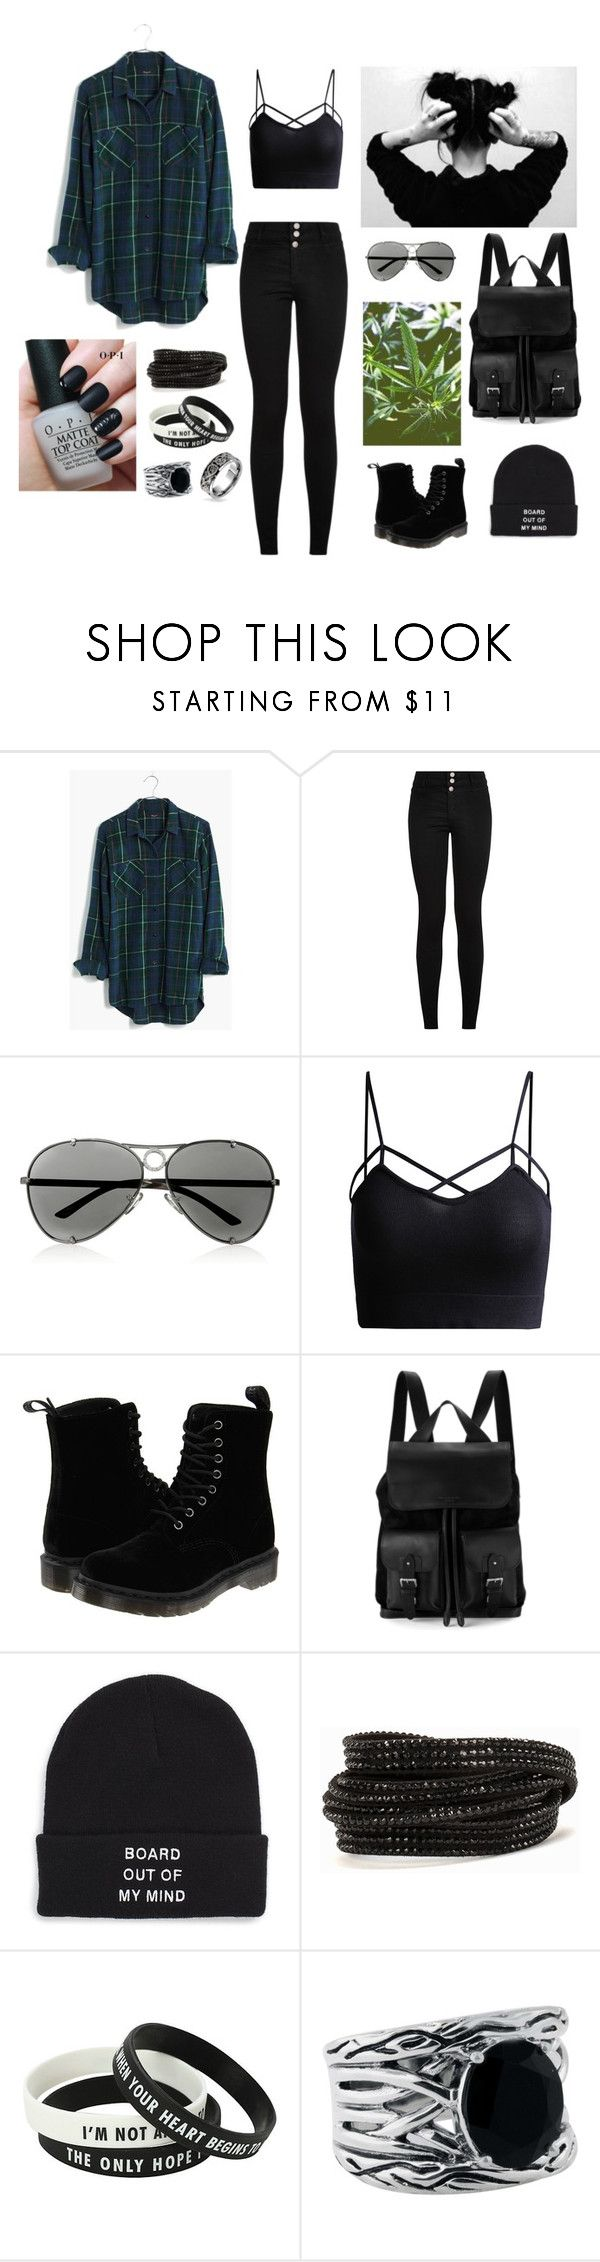 """""""Grunge"""" by sundaymigraine ❤ liked on Polyvore featuring Madewell, Valentino, Dr. Martens, Aspinal of London, Vans, Pieces, OPI, Effy Jewelry, Bling Jewelry and grunge"""